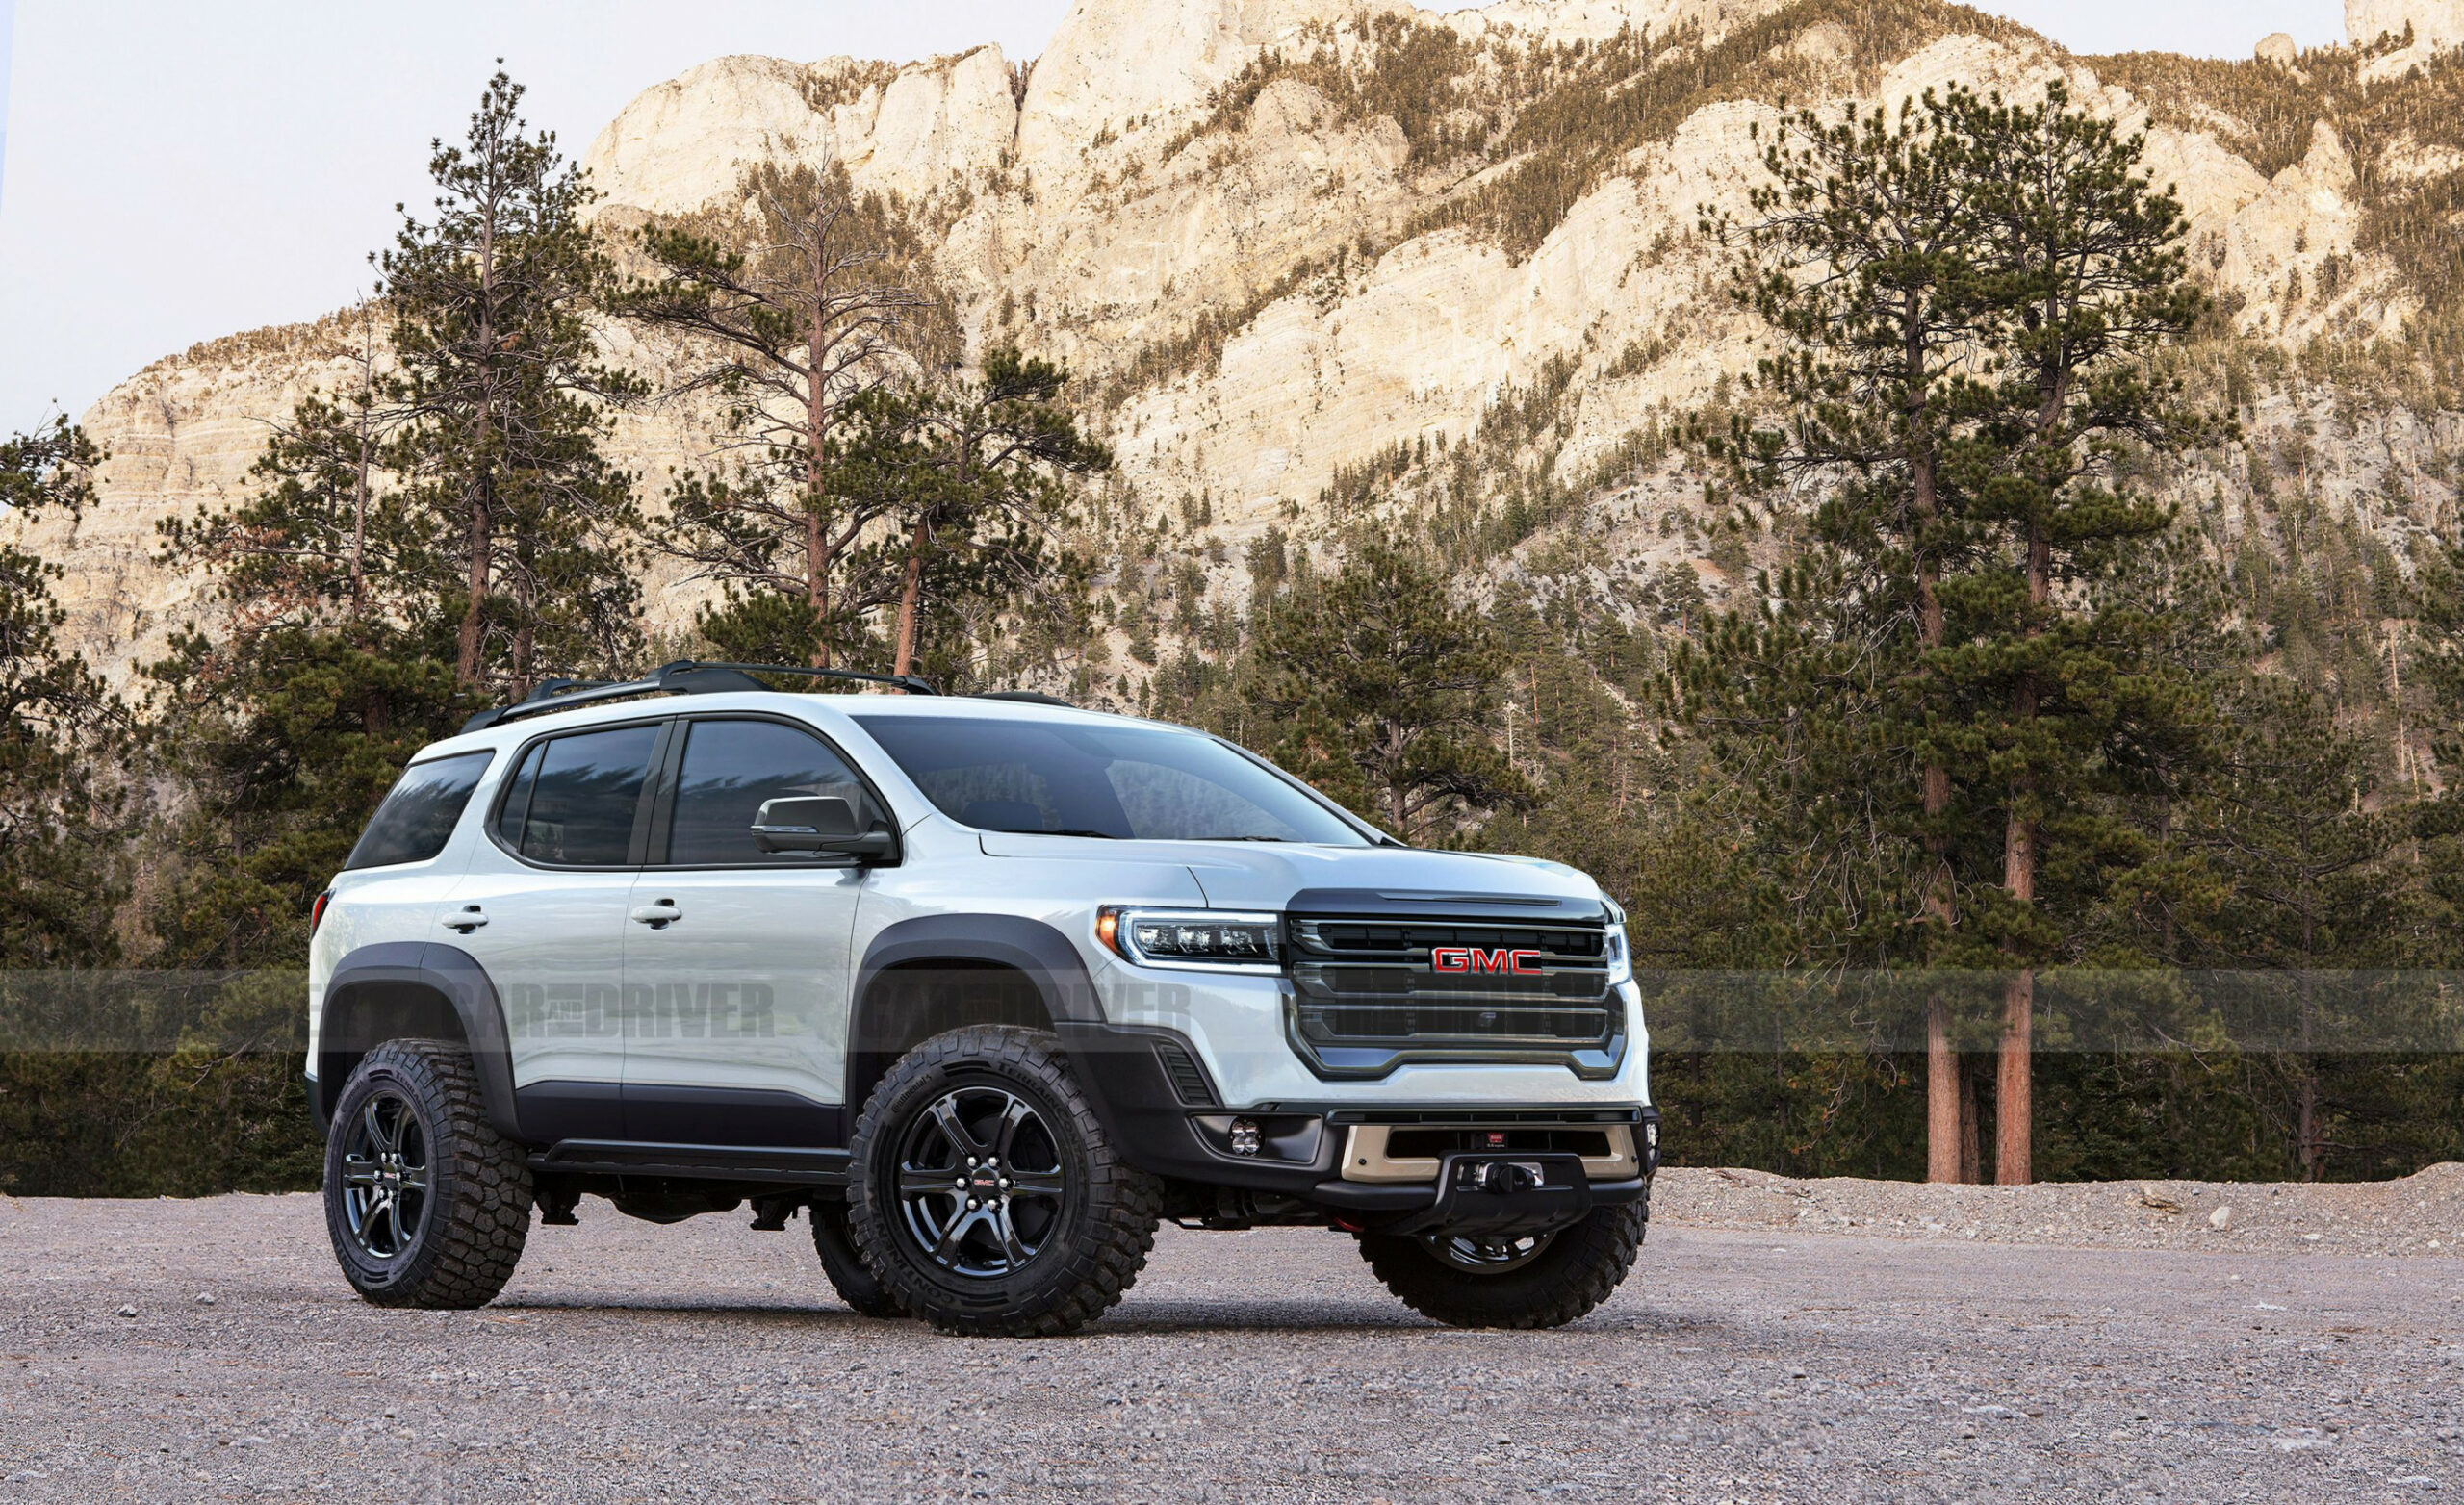 Redesign and Concept Gmc New Body Style 2022